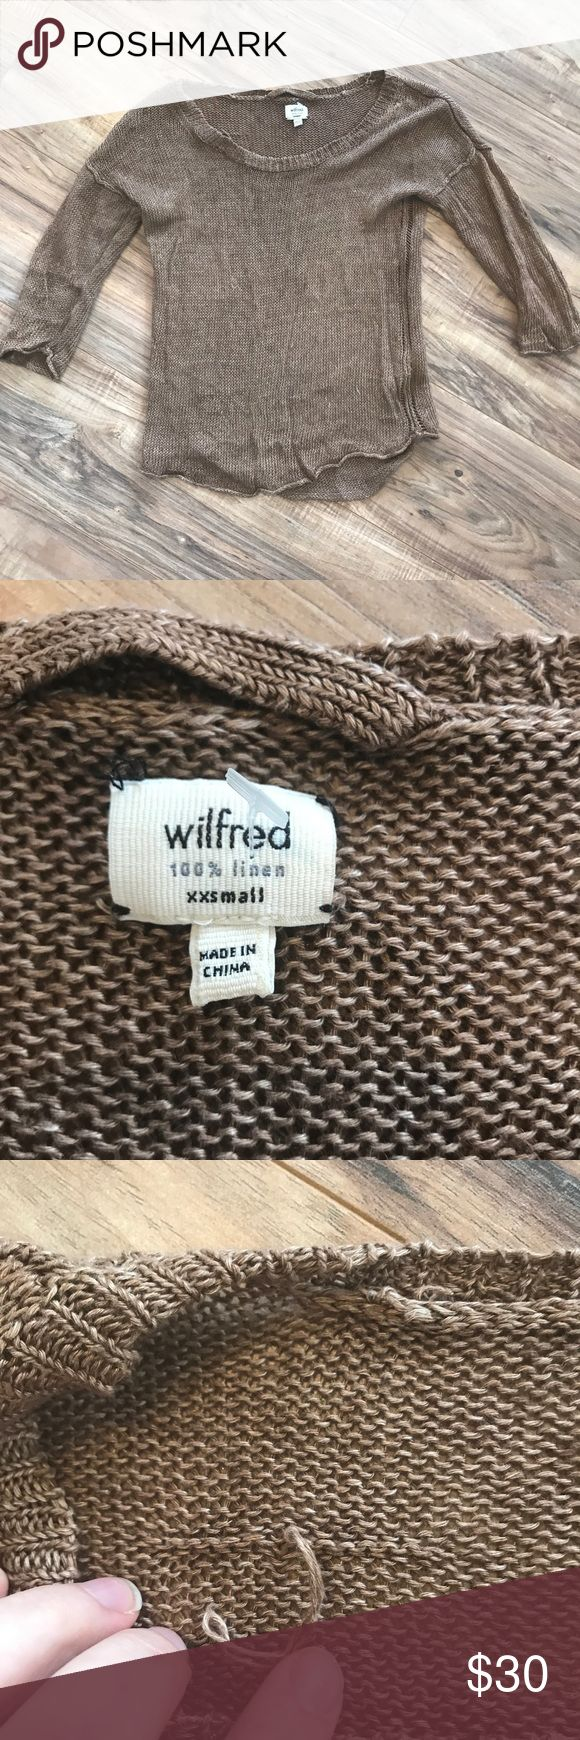 Wilfred scoop neck linen knit top size XXS One pull on the inside. It is tied to prevent more pulling. You can't see it from the outside. Tag is untacked on one corner. Wilfred Tops Blouses